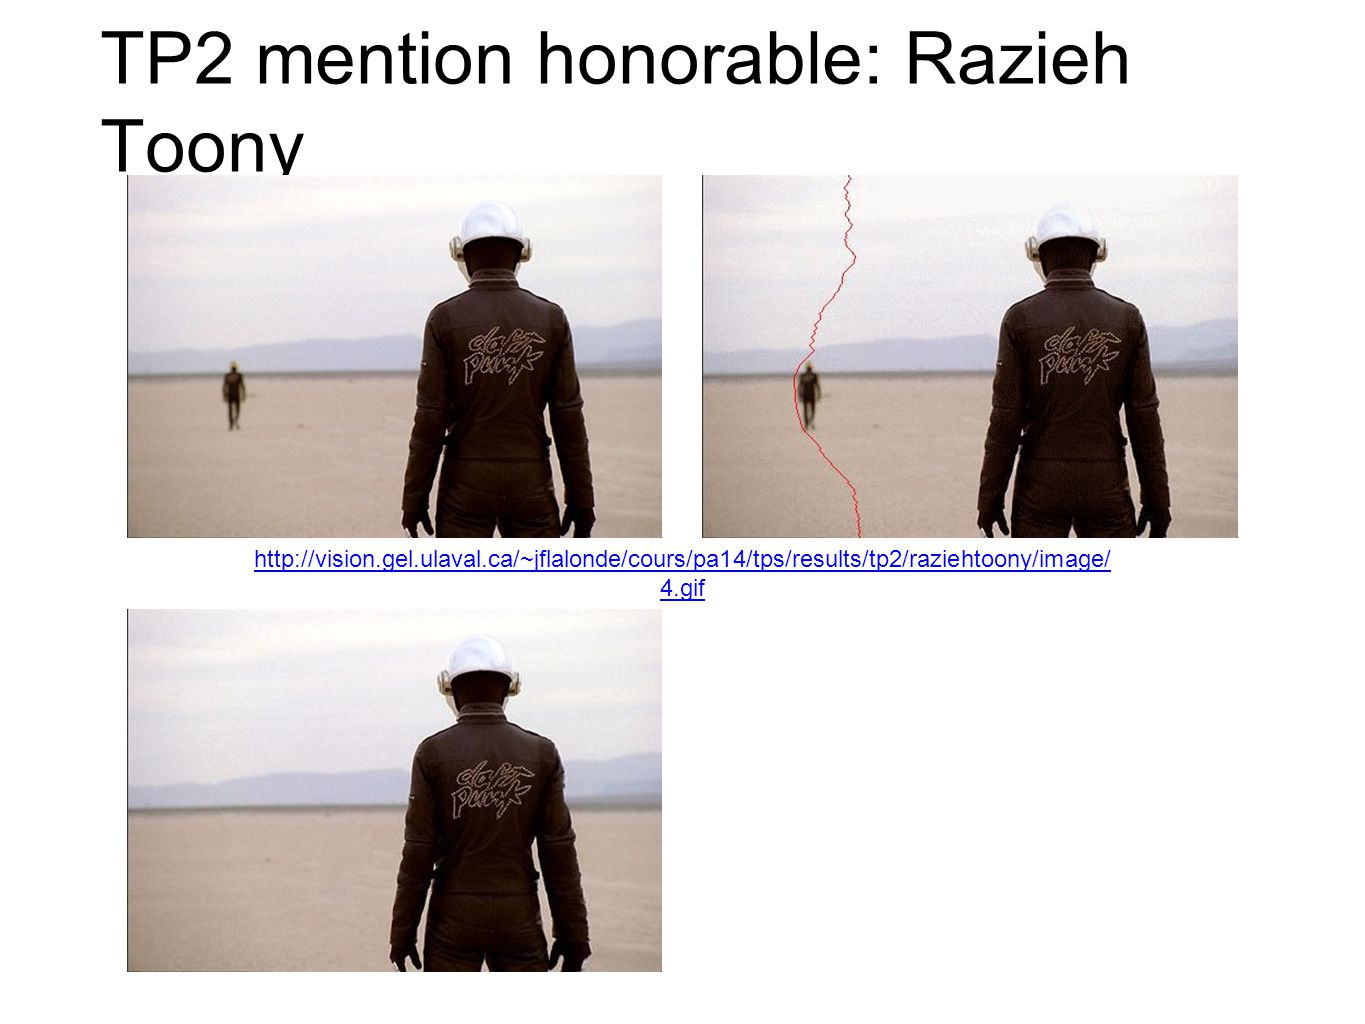 TP2 mention honorable: Razieh Toony http://vision.gel.ulaval.ca/~jflalonde/cours/pa14/tps/results/tp2/raziehtoony/image/ 4.gif